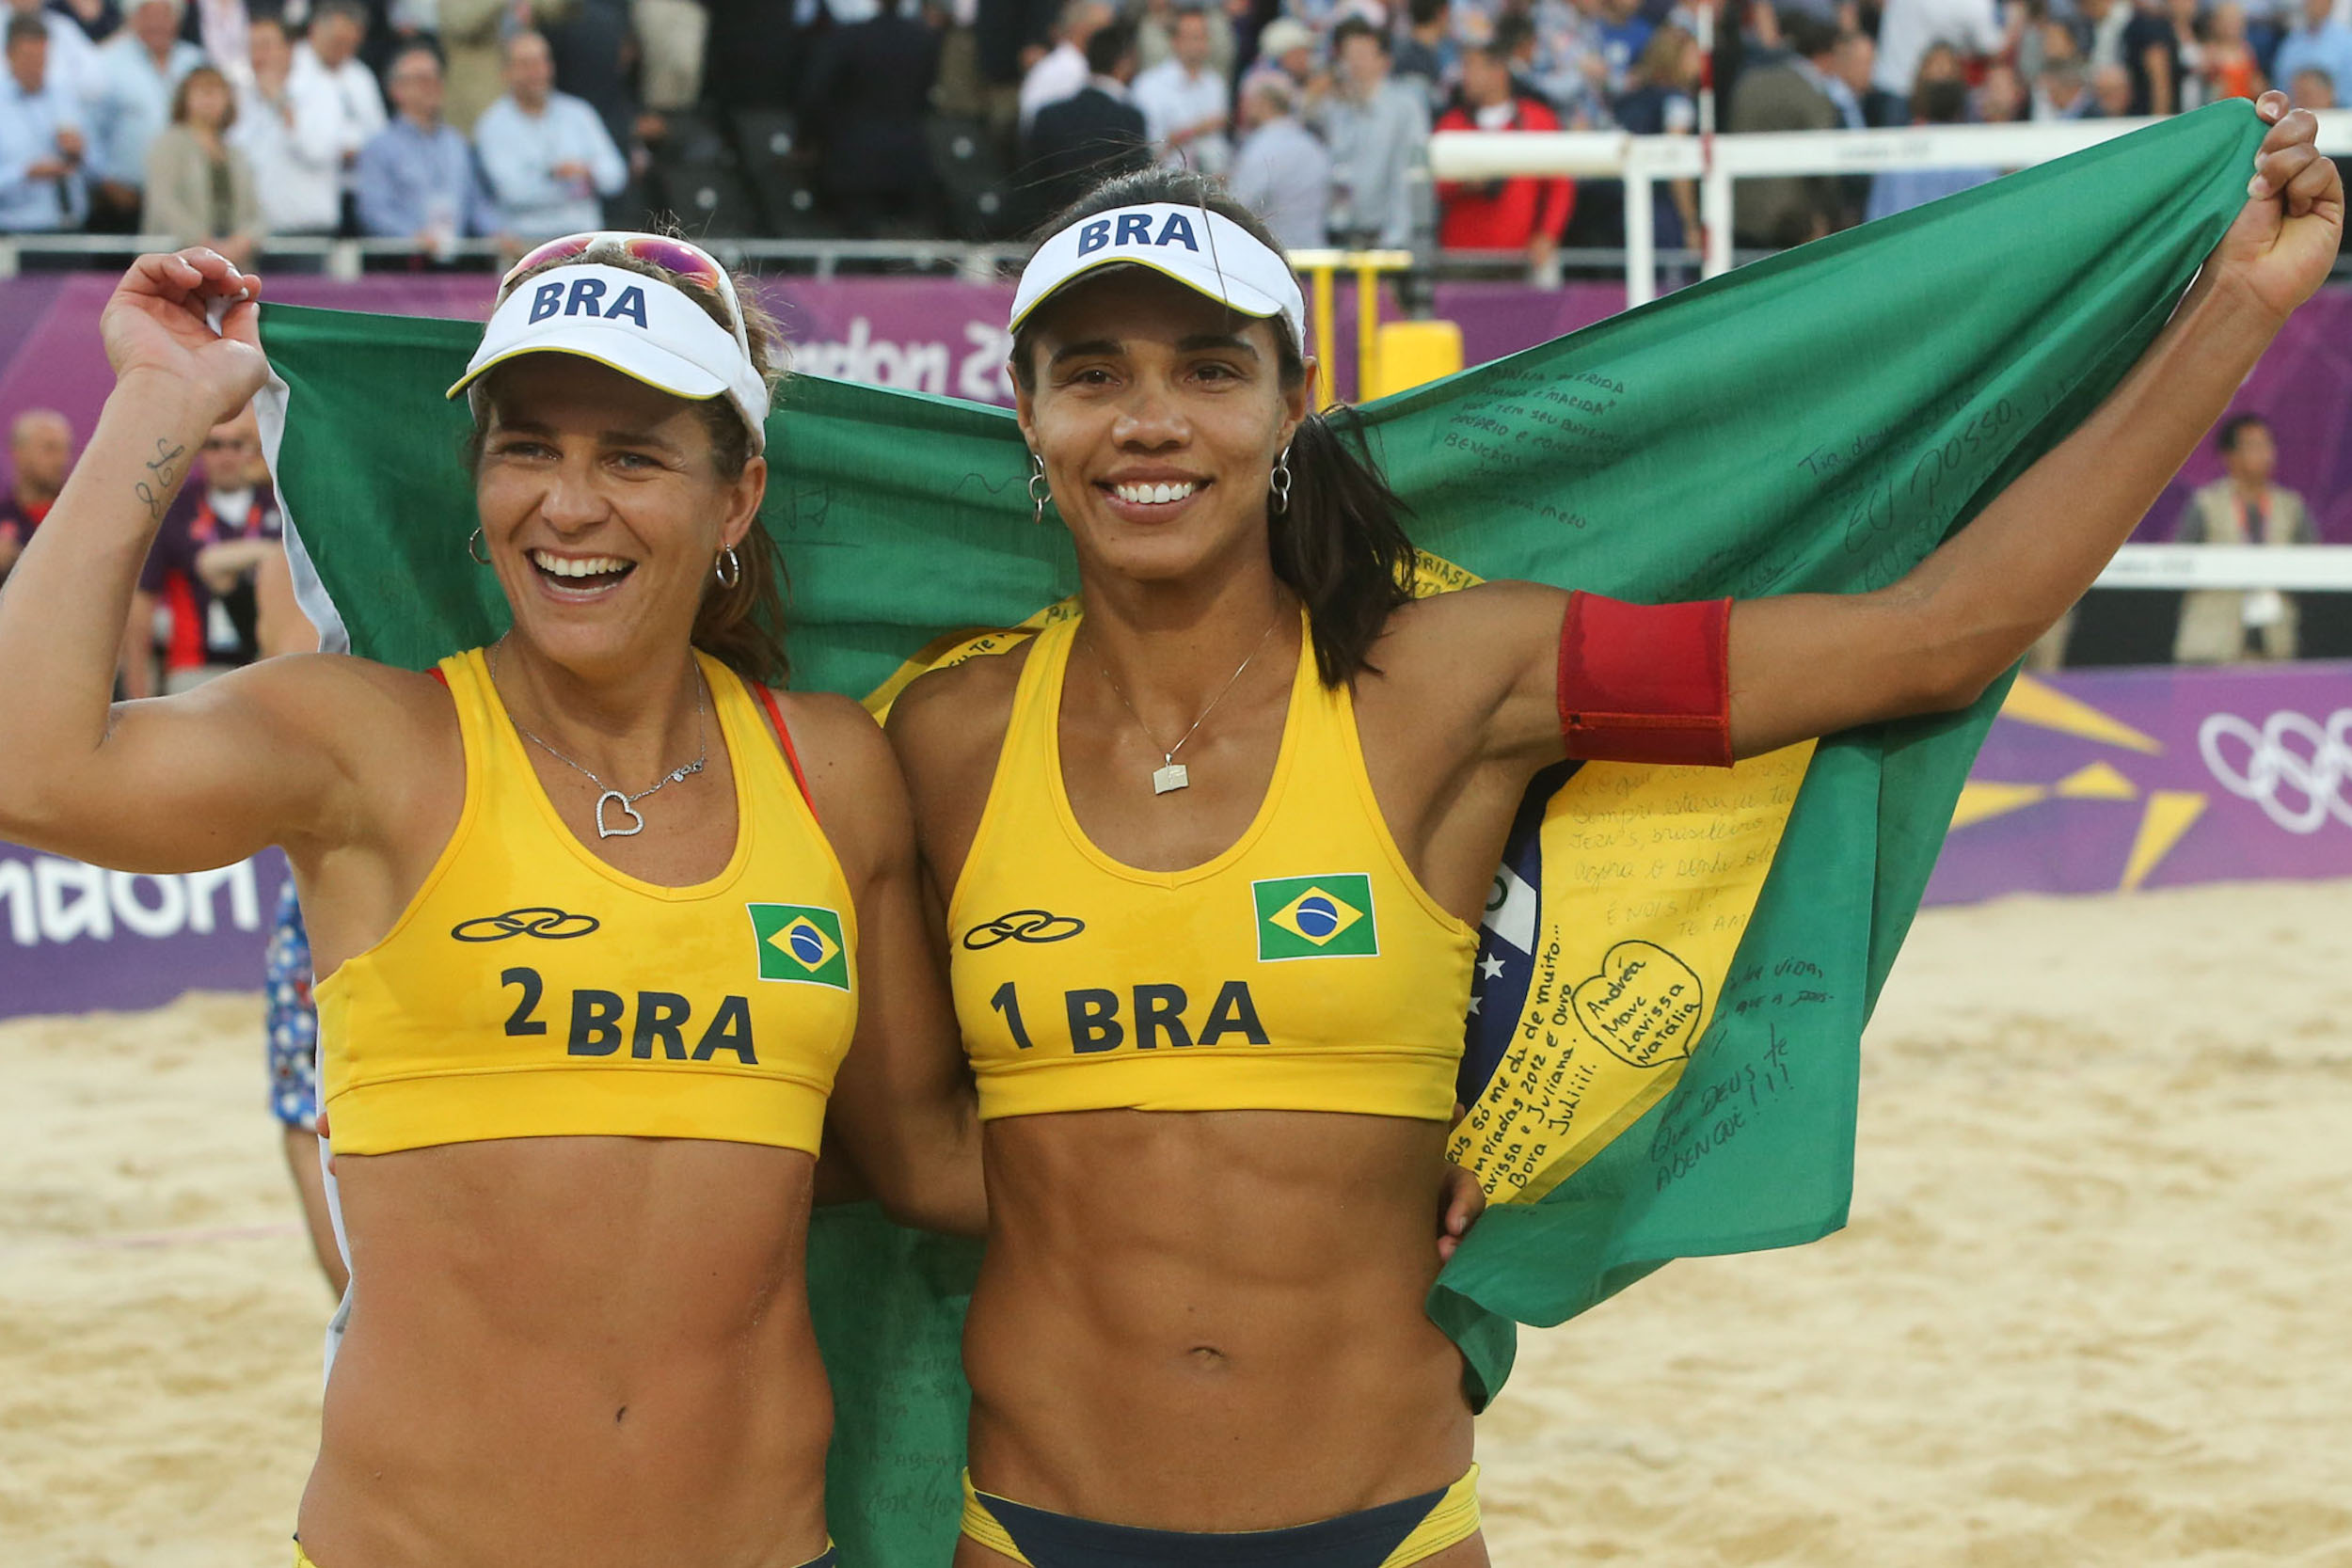 Londres 2012, Beach-Volleyball Bronze